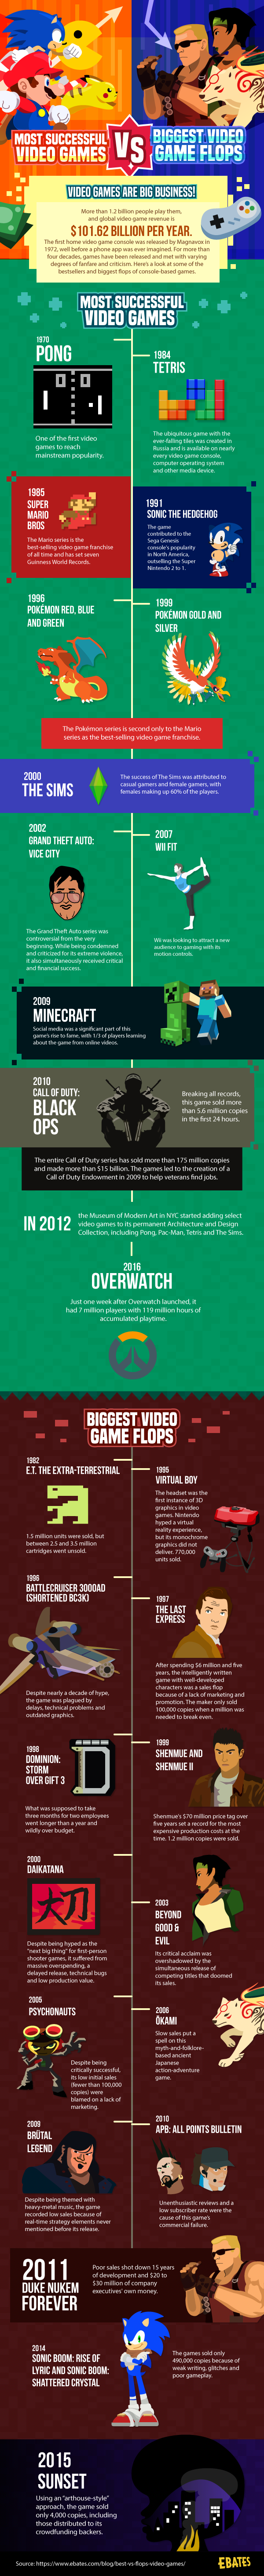 Video-Game Popularity Charts: Blockbusters and Disasters Through the Decades - Infographic